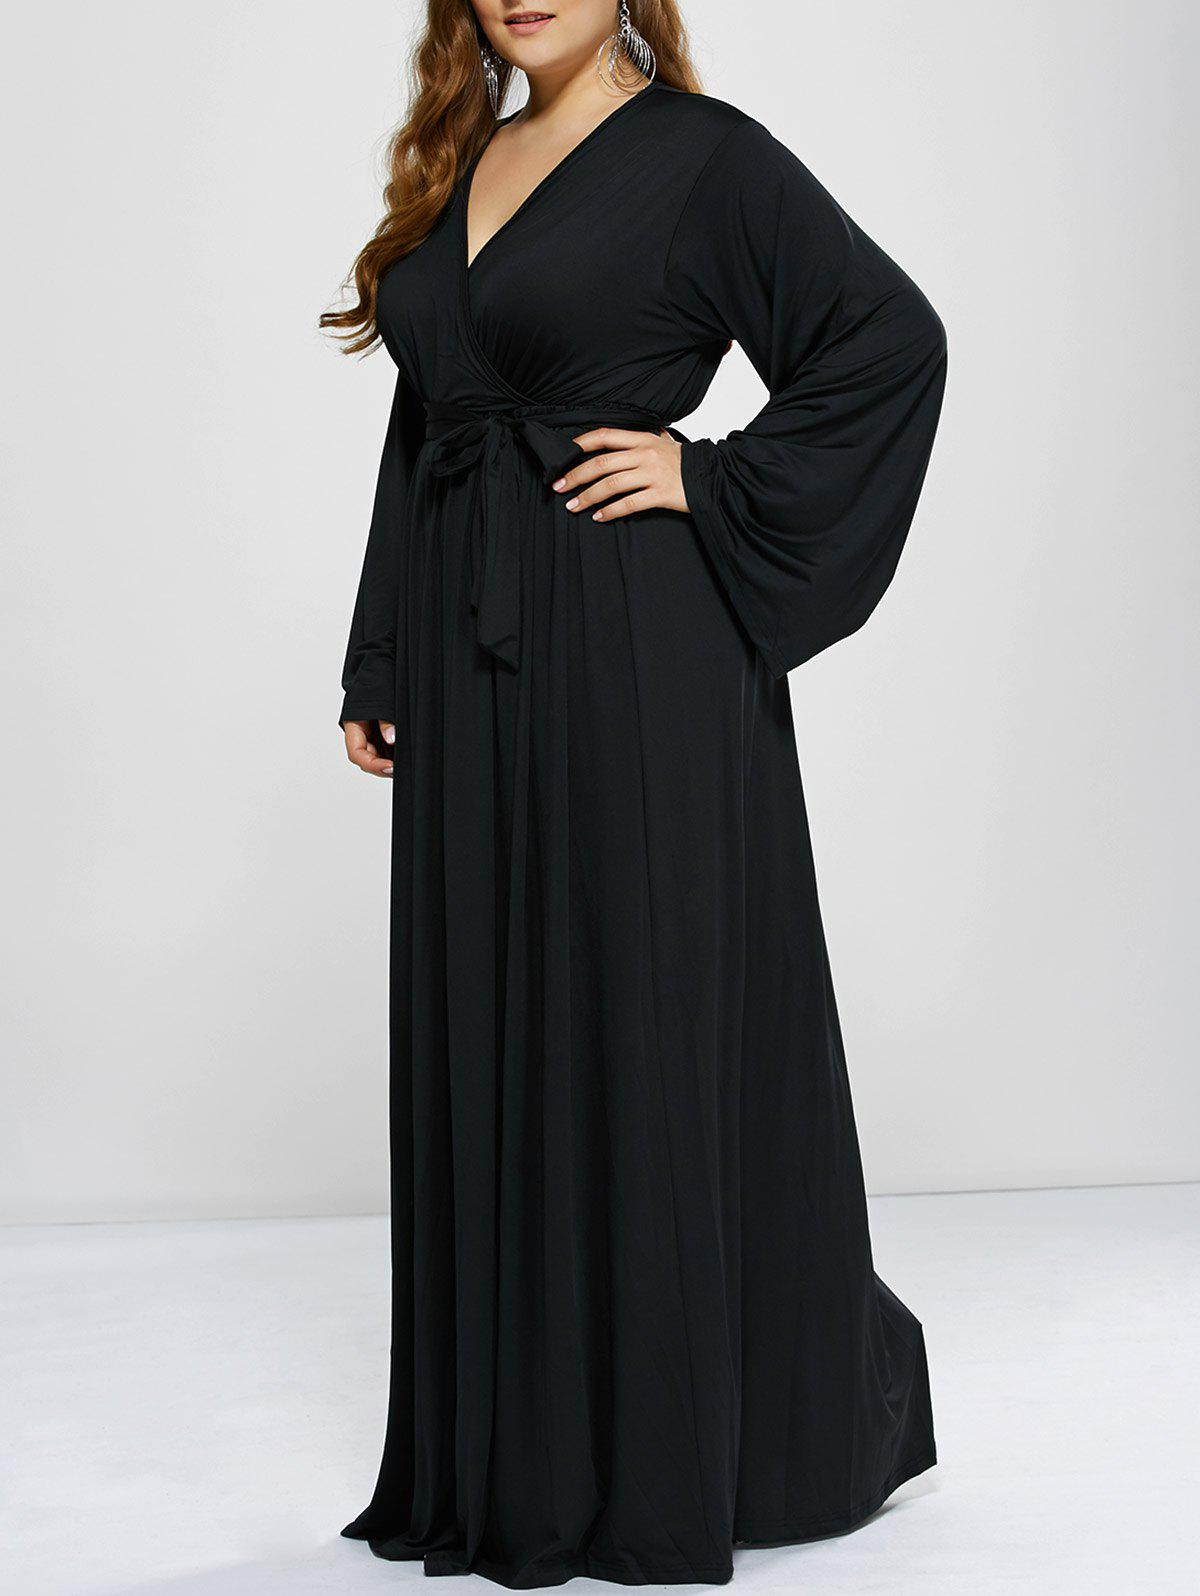 2018 Plus Size Long Sleeve Modest Maxi Formal Dress Black Xl In